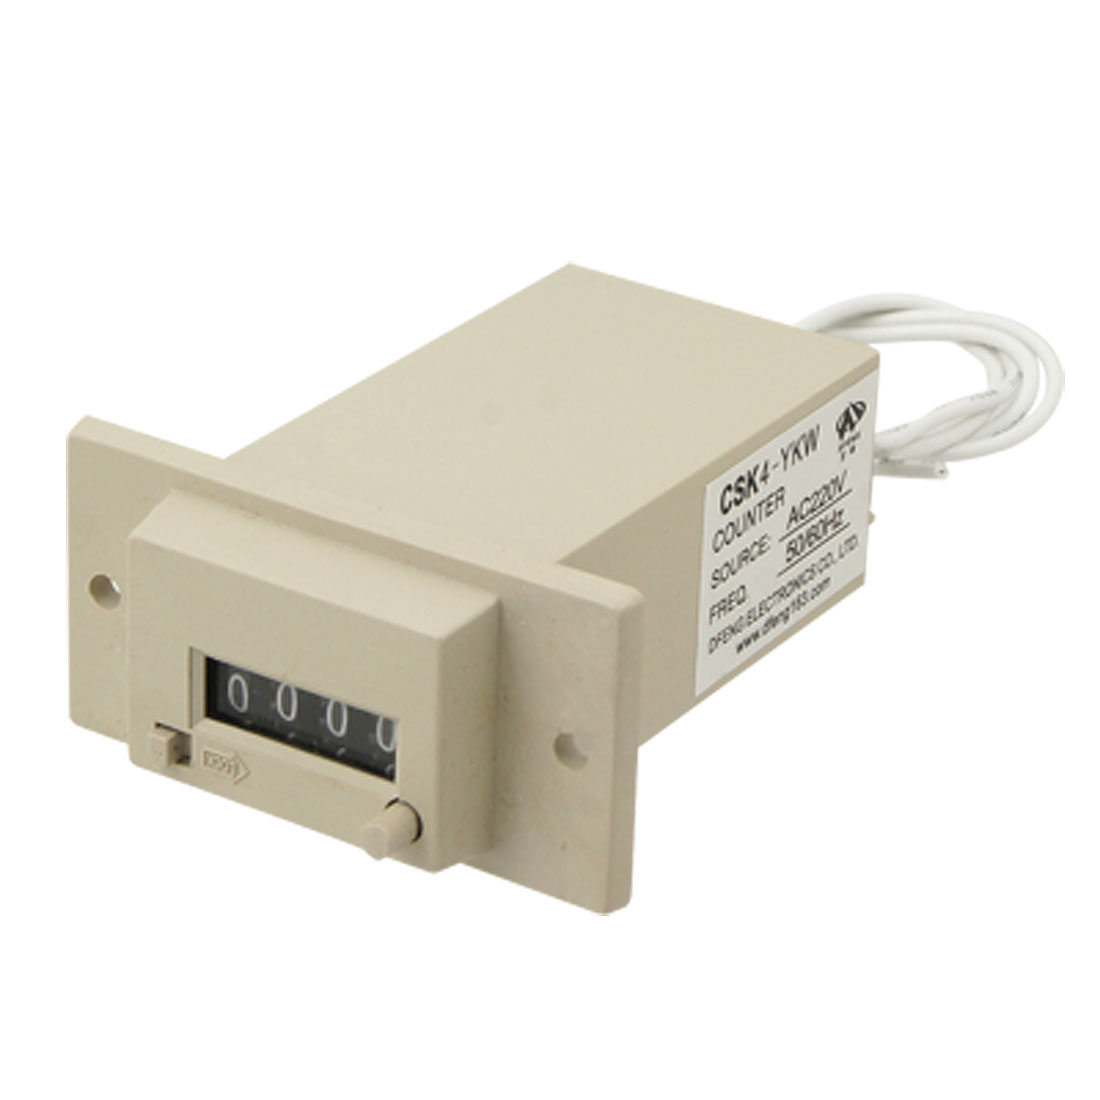 AC 220V CSK4-YKW 4 Digits Electromagnetic Counter